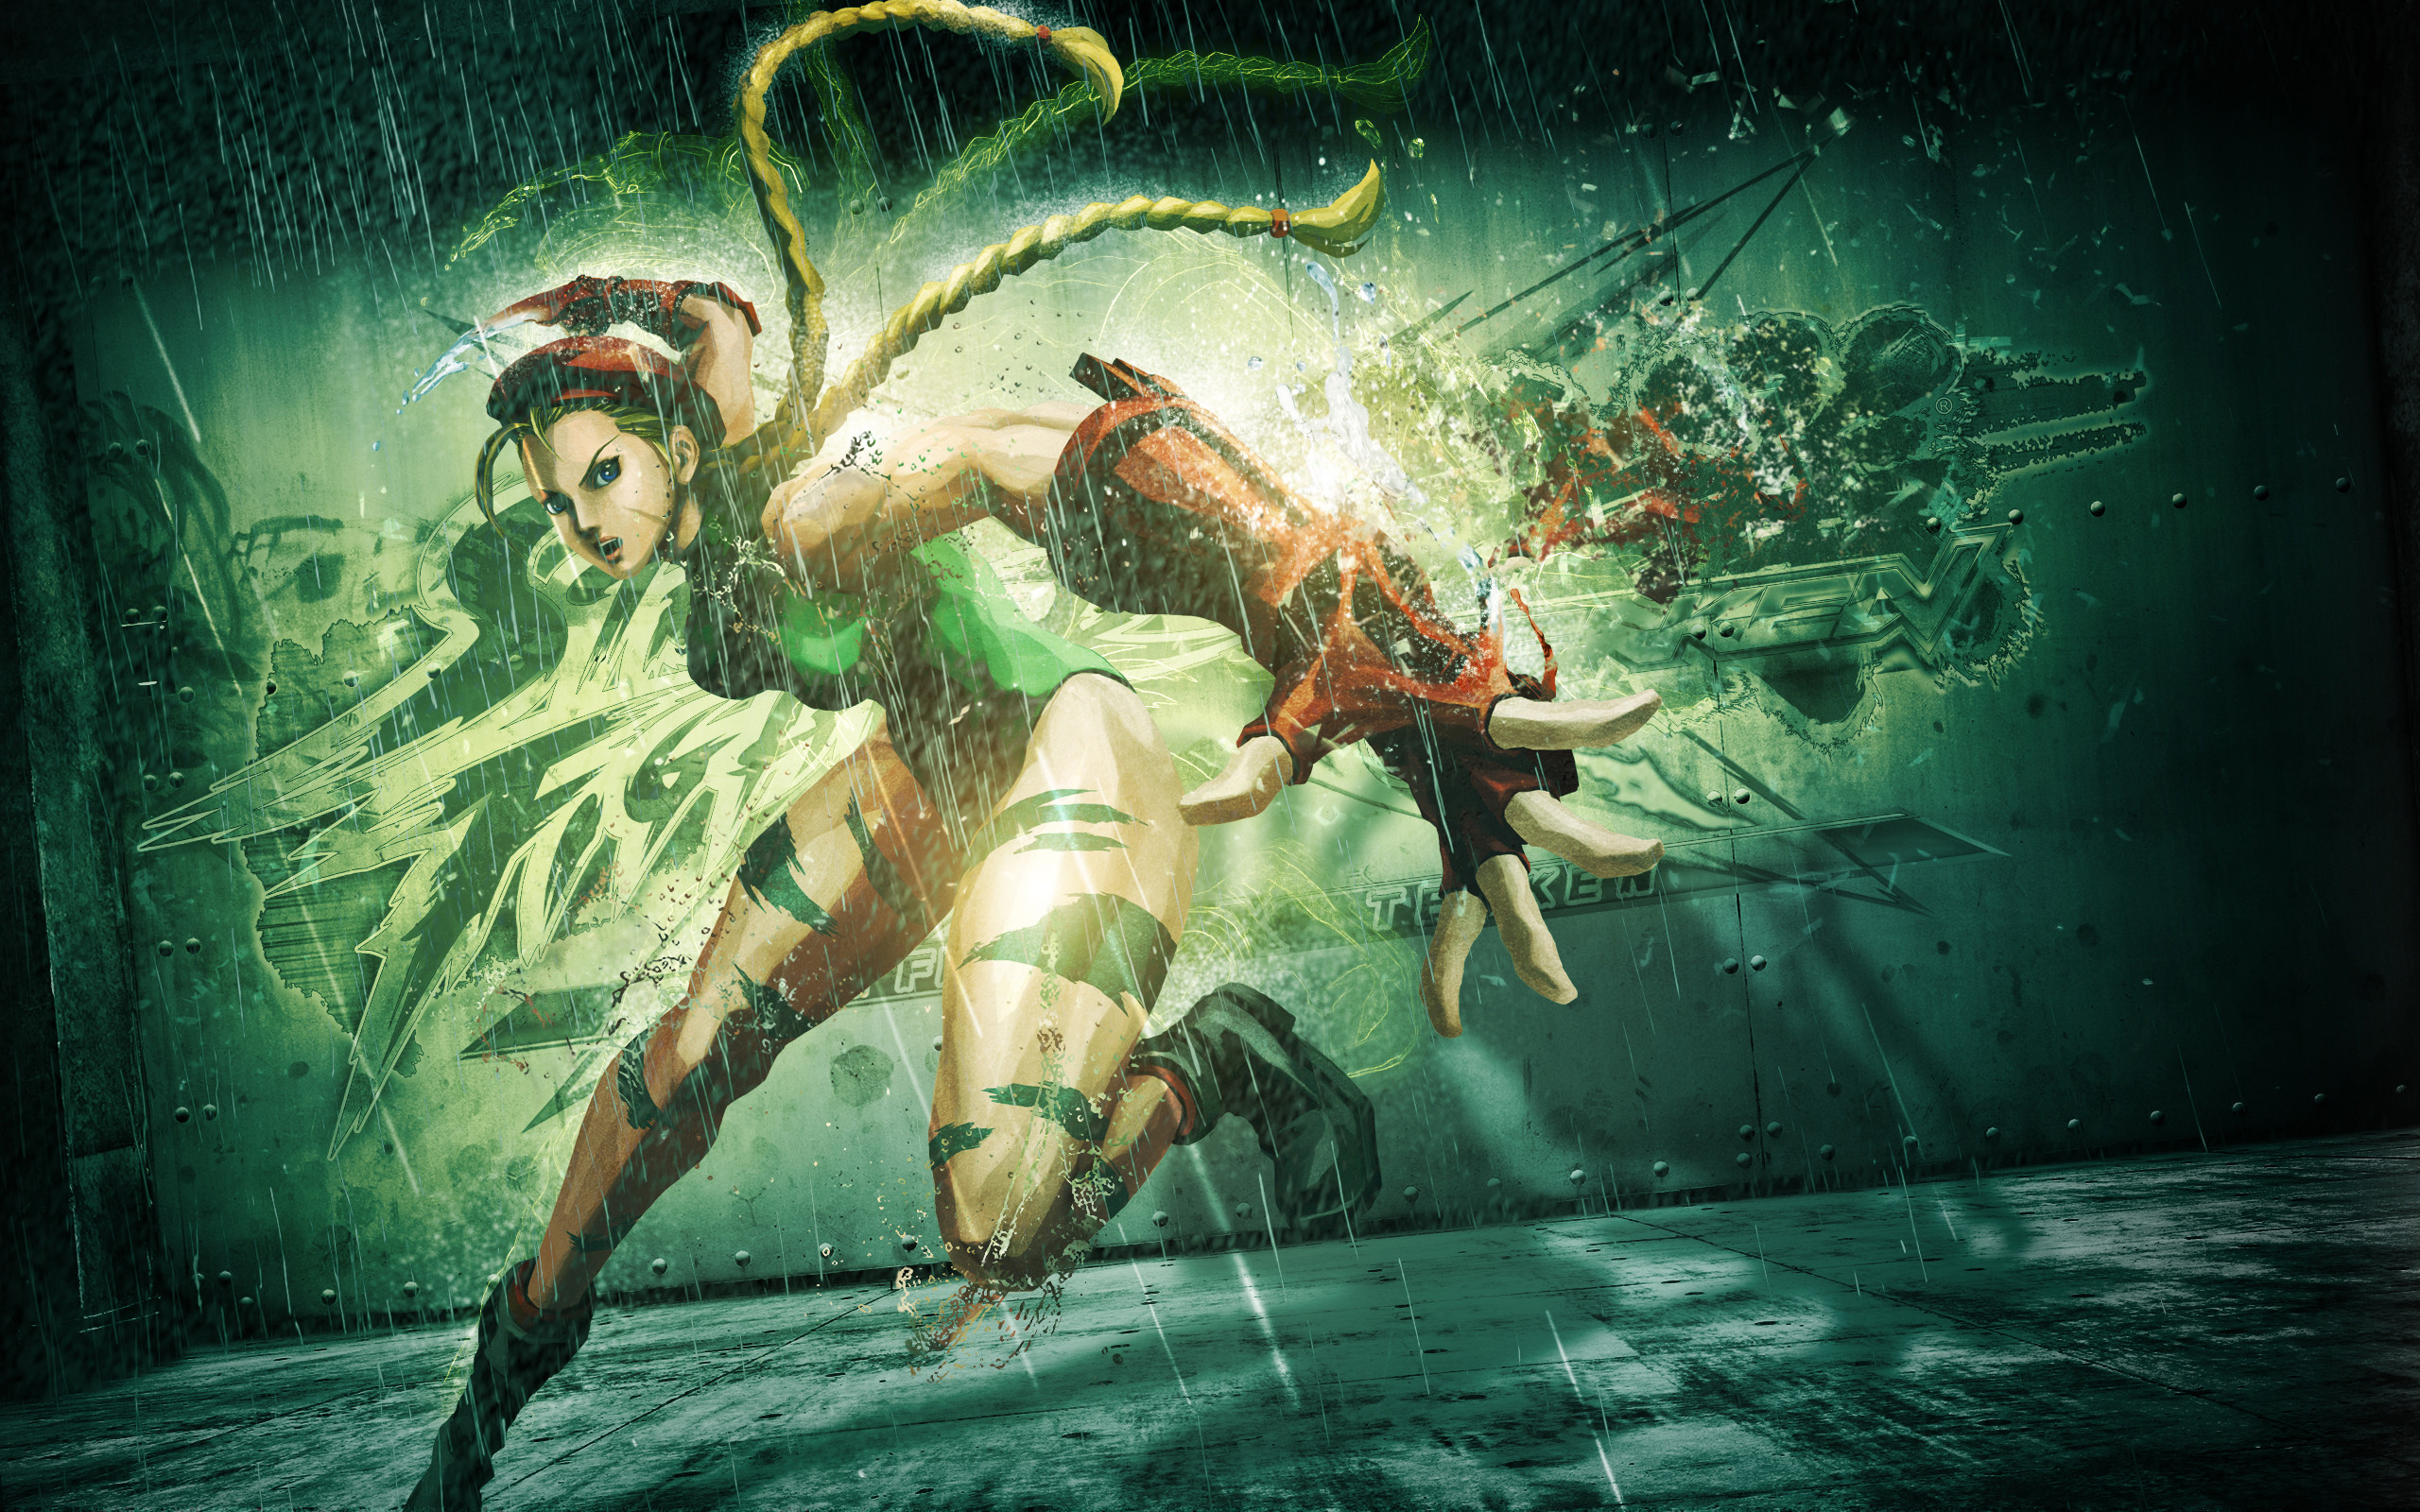 Cammy in The Street Fighter